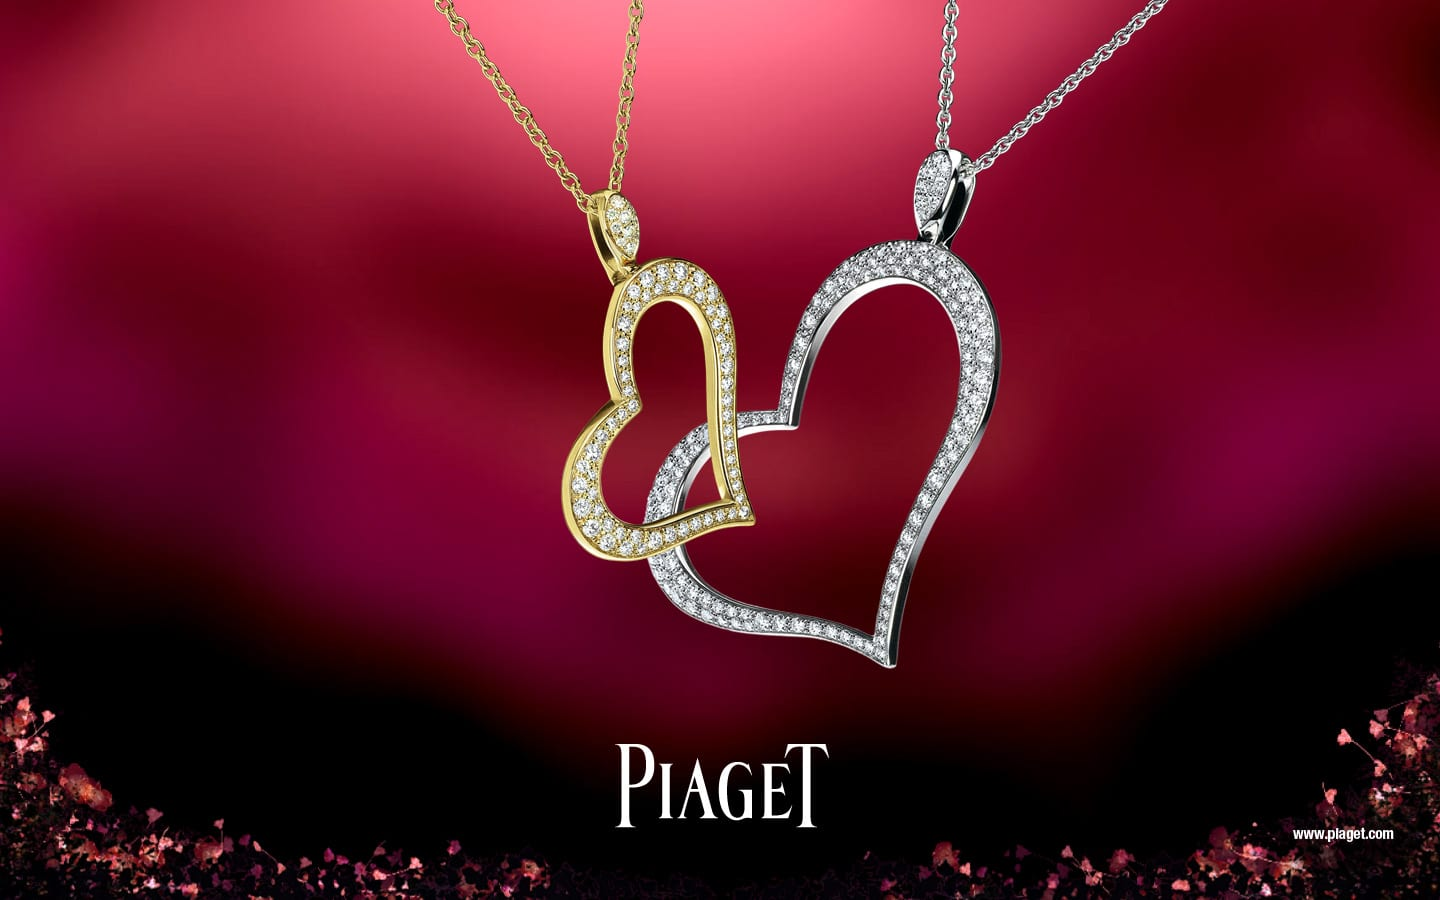 Top 10 Most Famous Jewelry Brands In The World